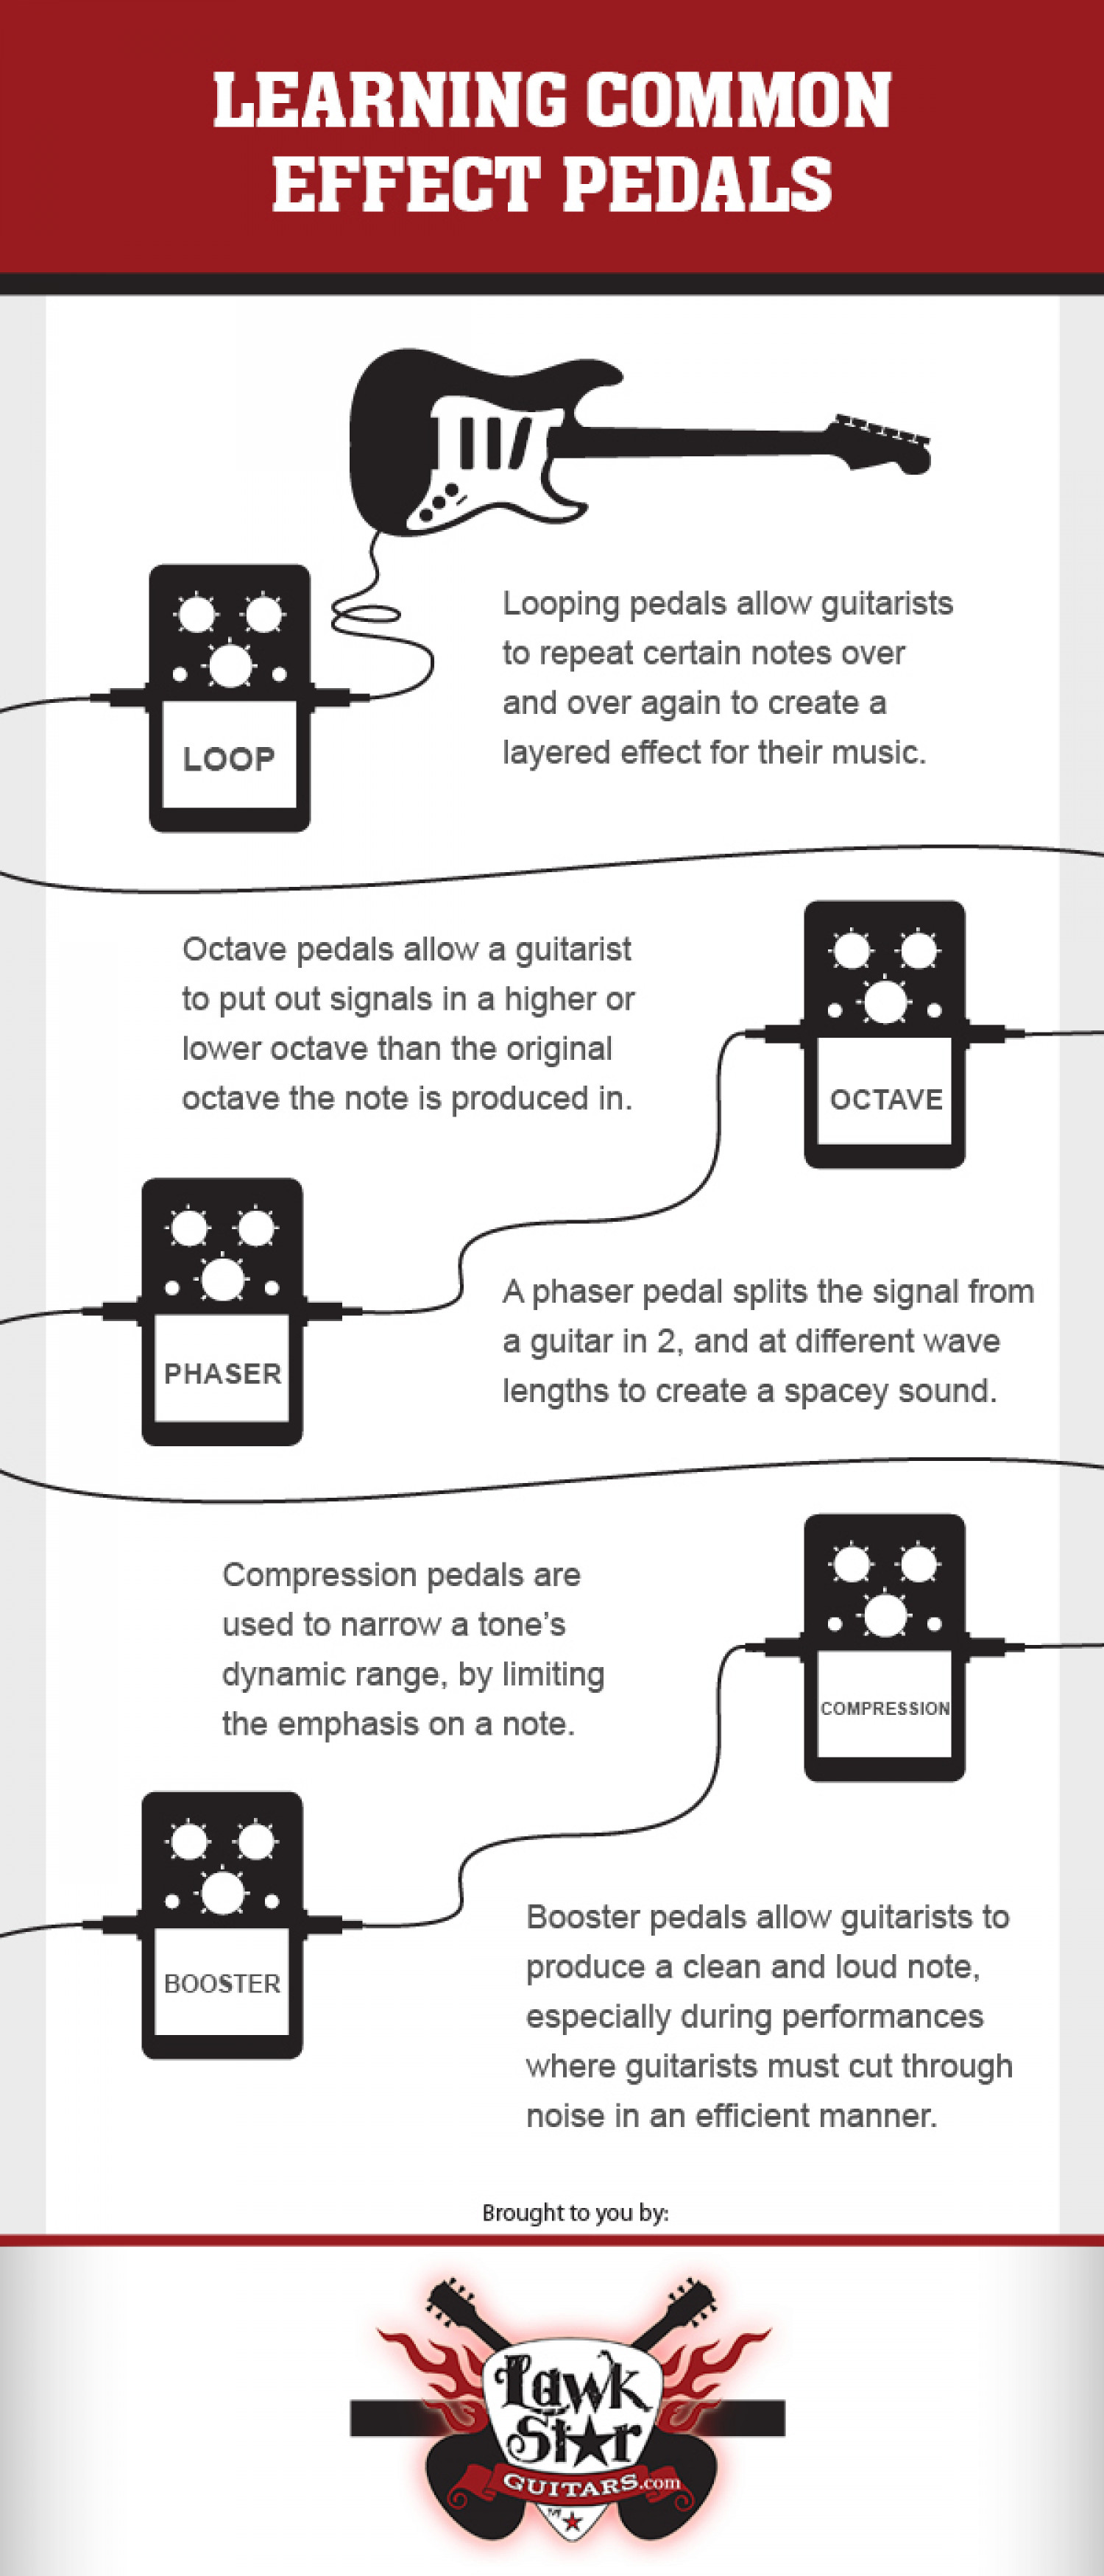 Learning Common Effect Pedals Infographic